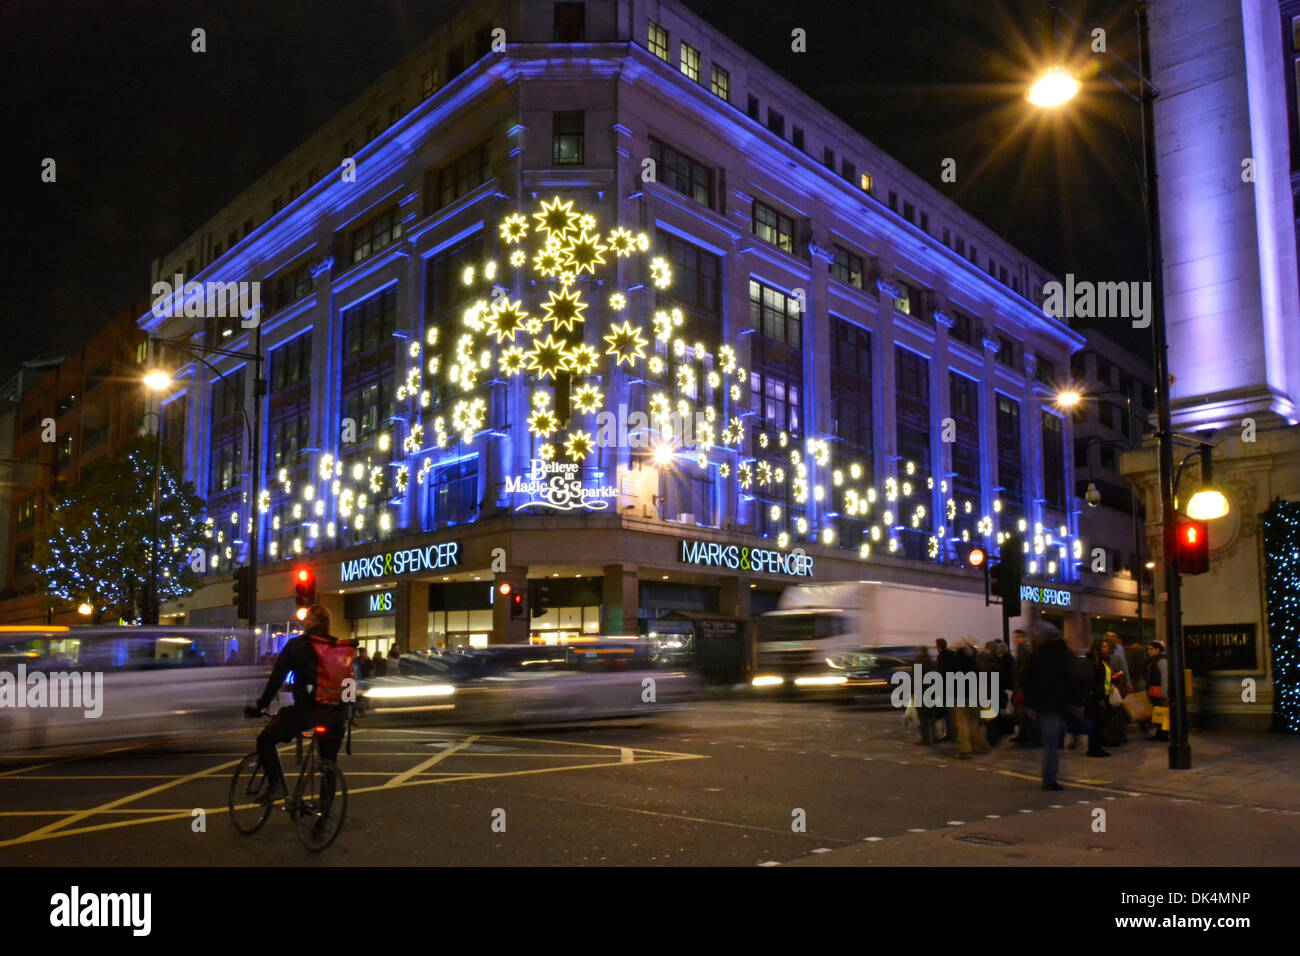 Christmas illuminations on Marks and Spencer Oxford Street store - Stock Image